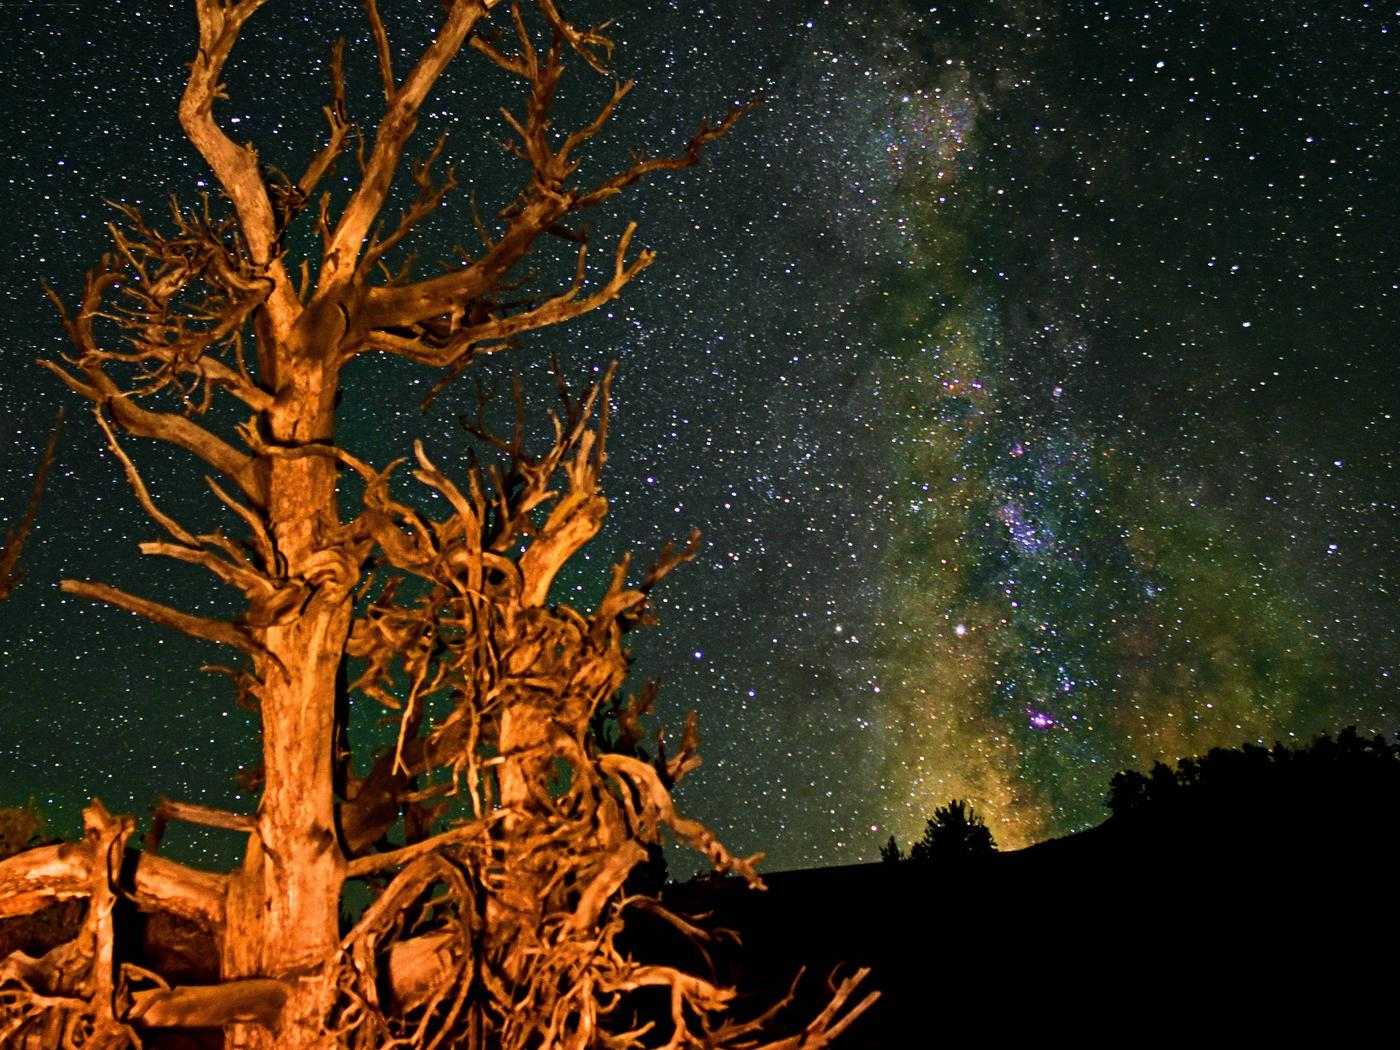 Night Skies at Craters of the Moon